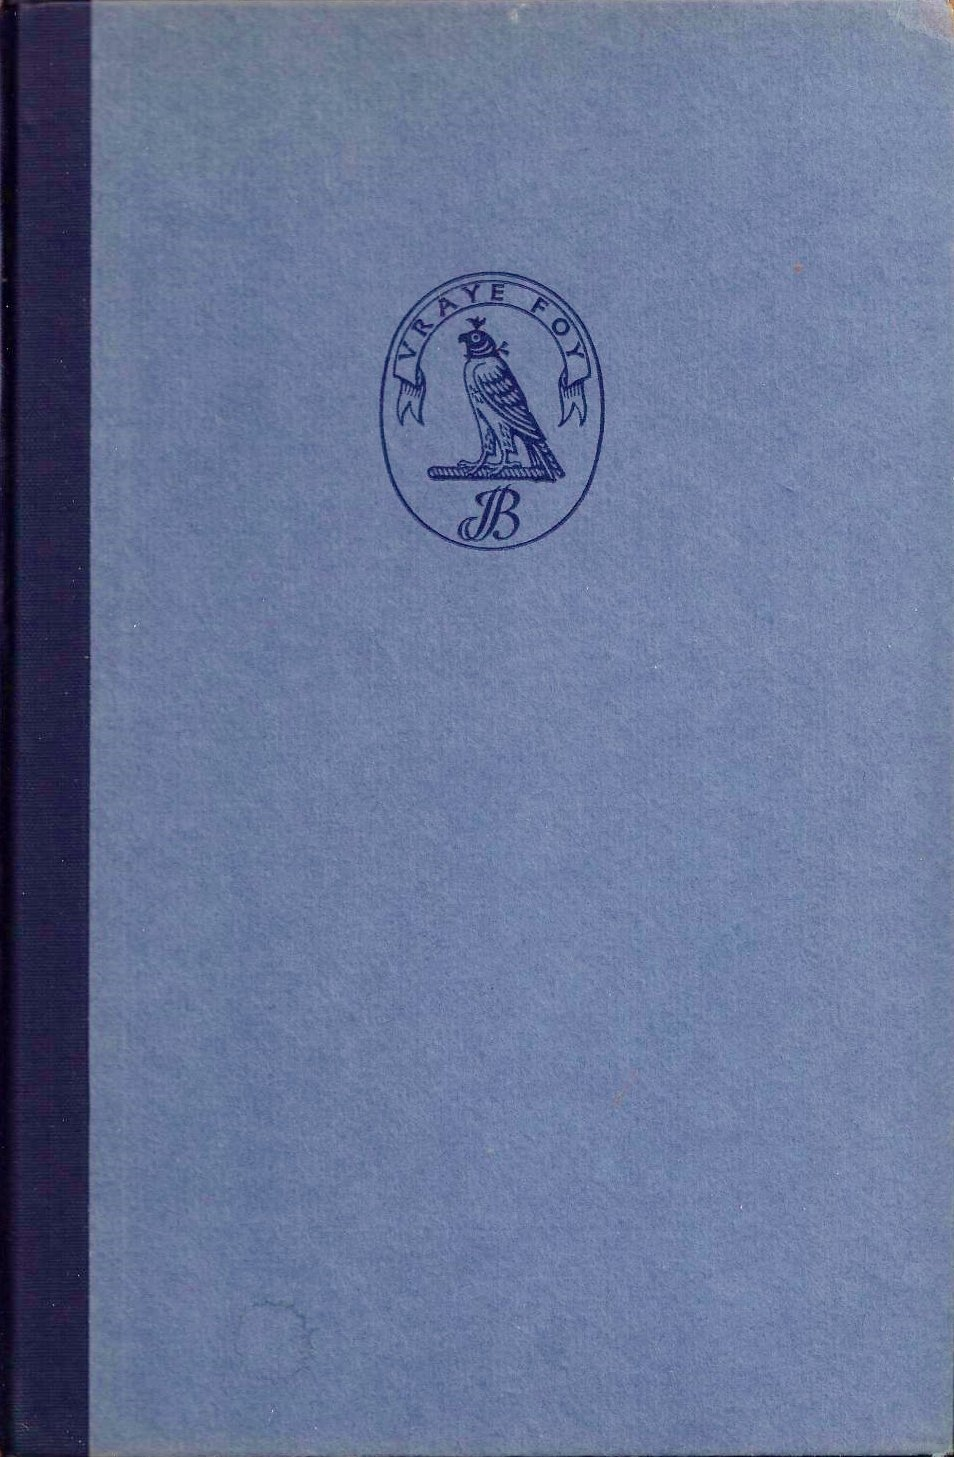 Boswell's London Journal 1762-1763: James Boswell, Frederick A. Pottle,  Christopher Morley: 9781299371170: Amazon.com: Books